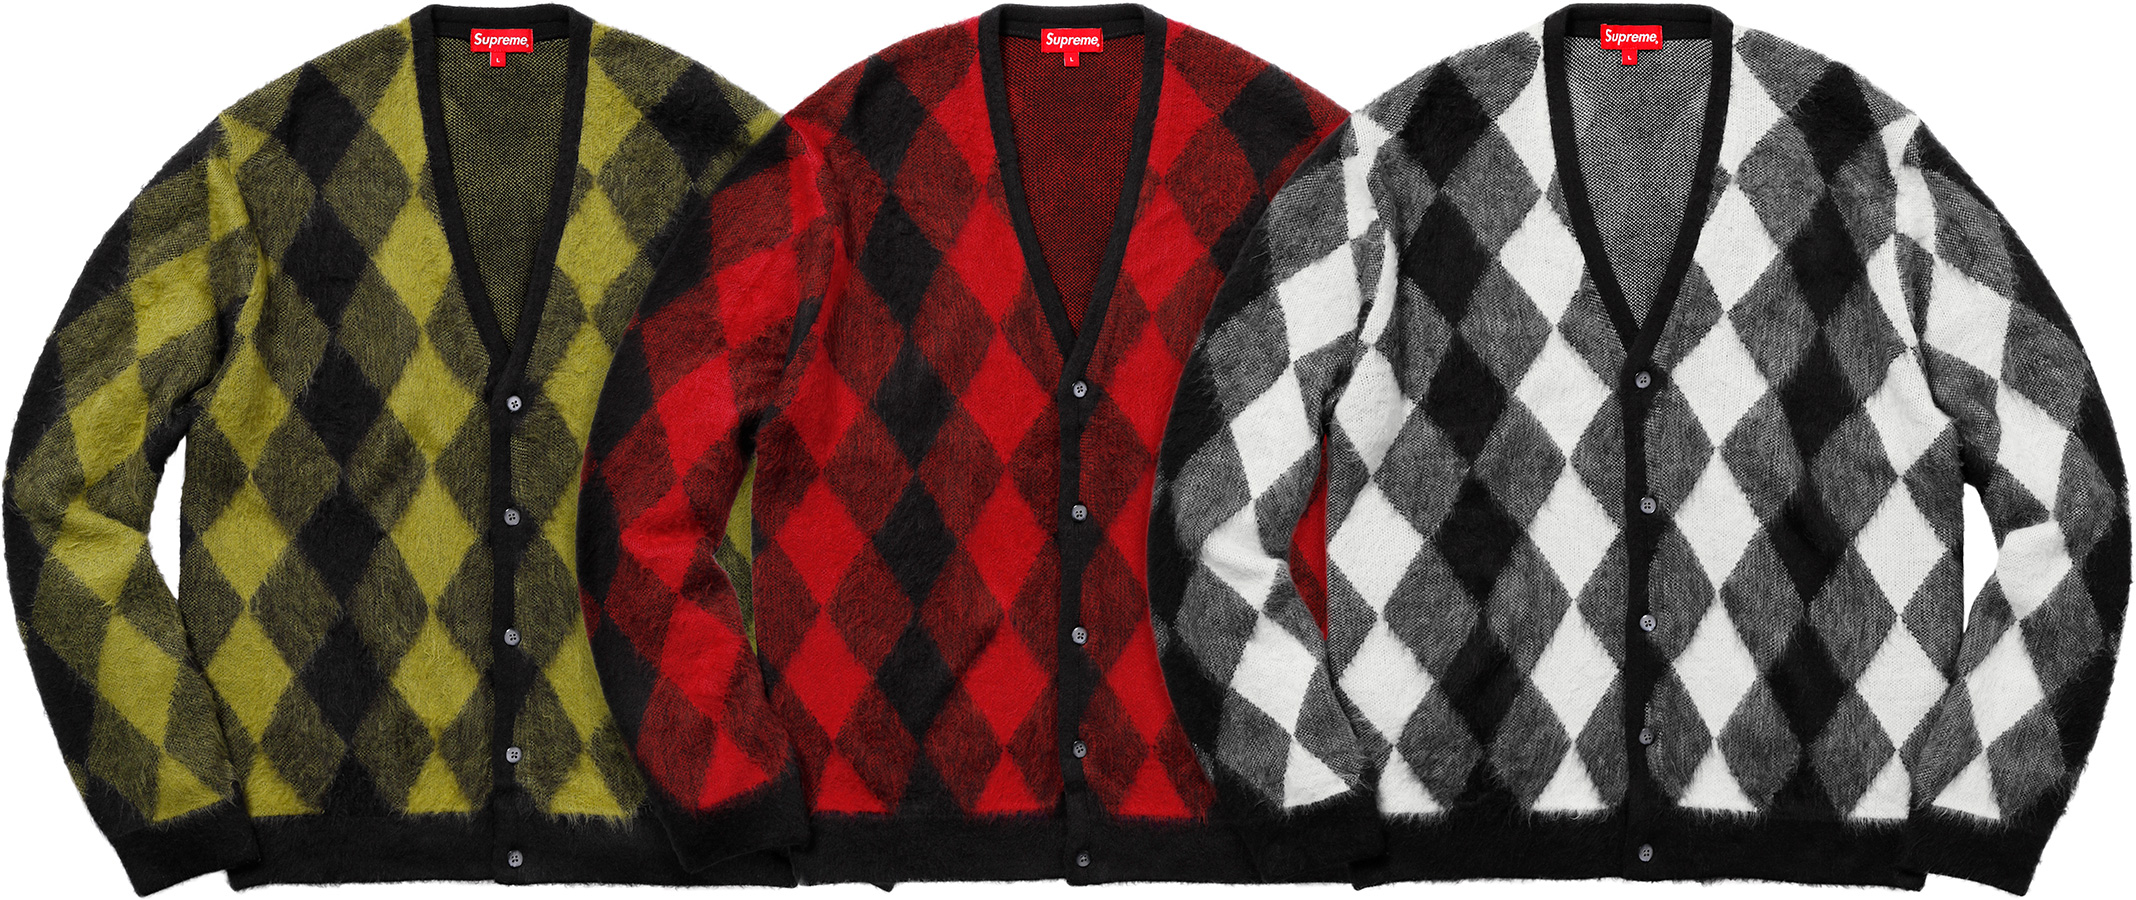 supreme-18ss-spring-summer-brushed-argyle-cardigan